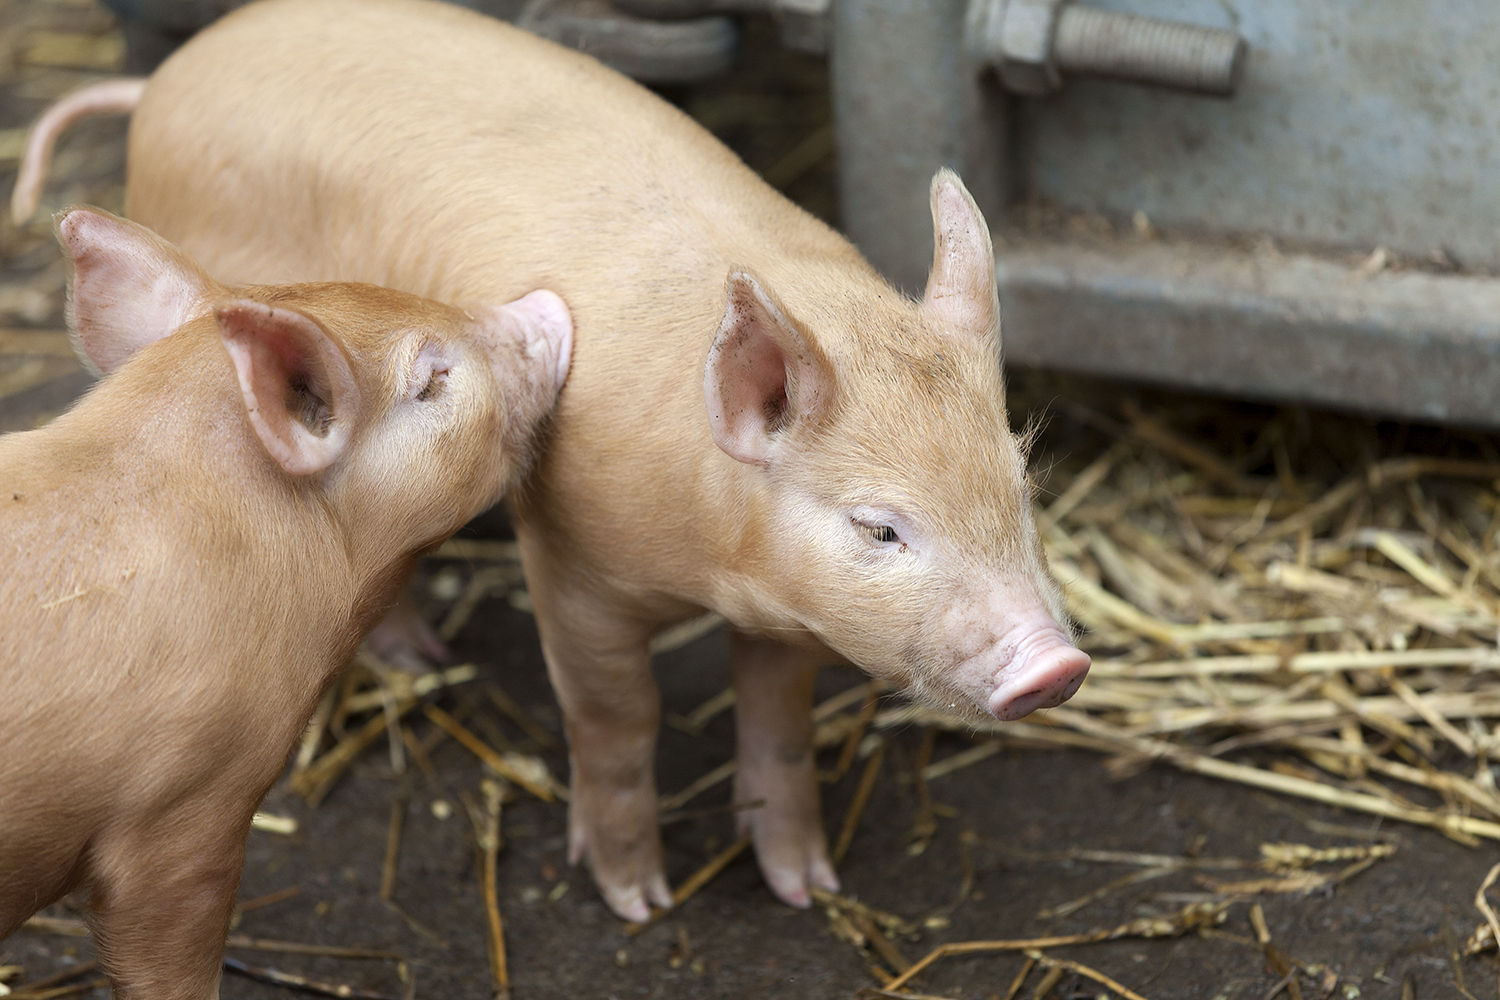 Two Tamworth piglets at the Wester Kittochside Farm © Ruth Armstrong Photography